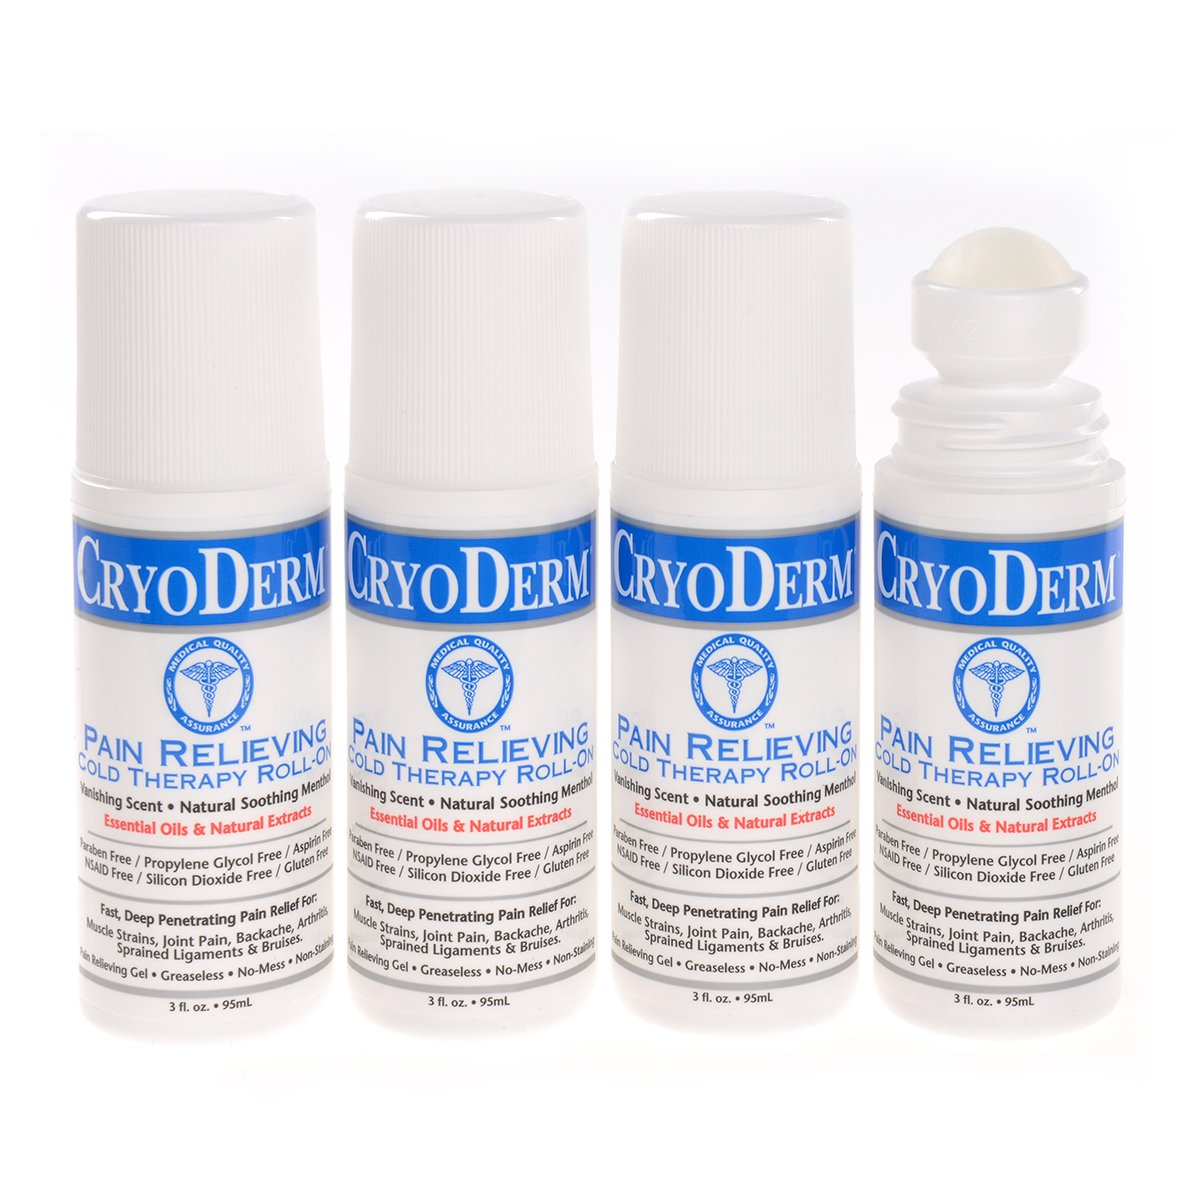 Cryoderm D-Roll-On-3oz-4 Cold Roll-On 3 oz. (Pack of 4)